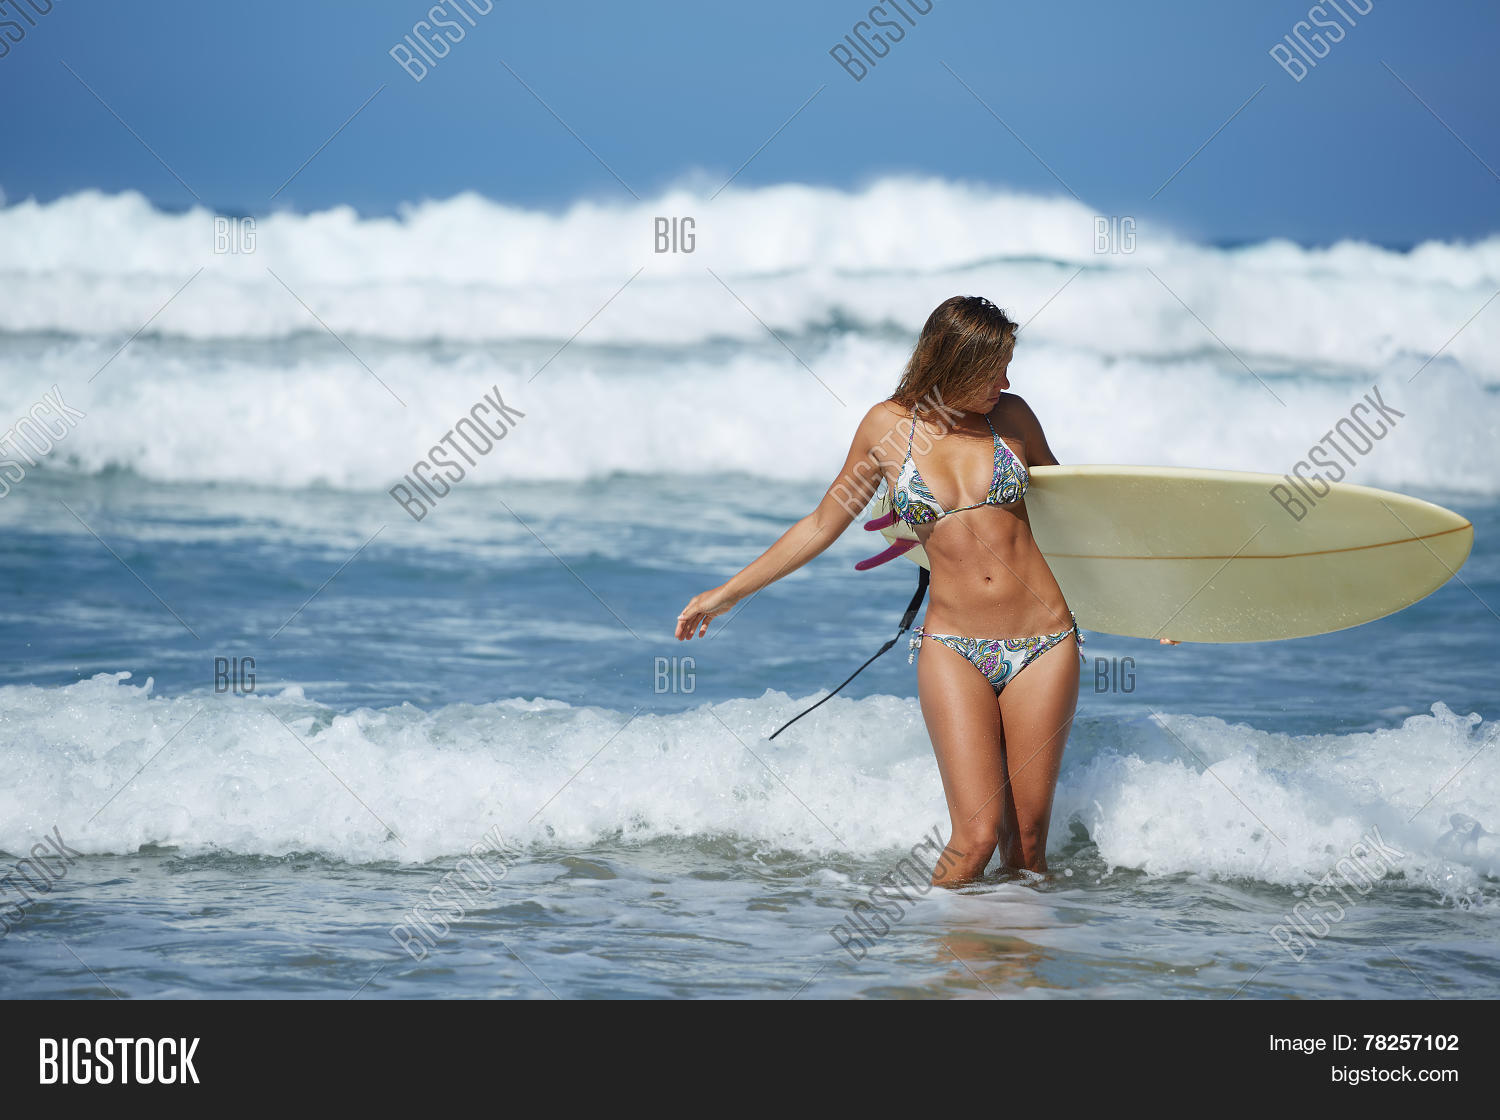 Sexy babes surfing hd pictures cute